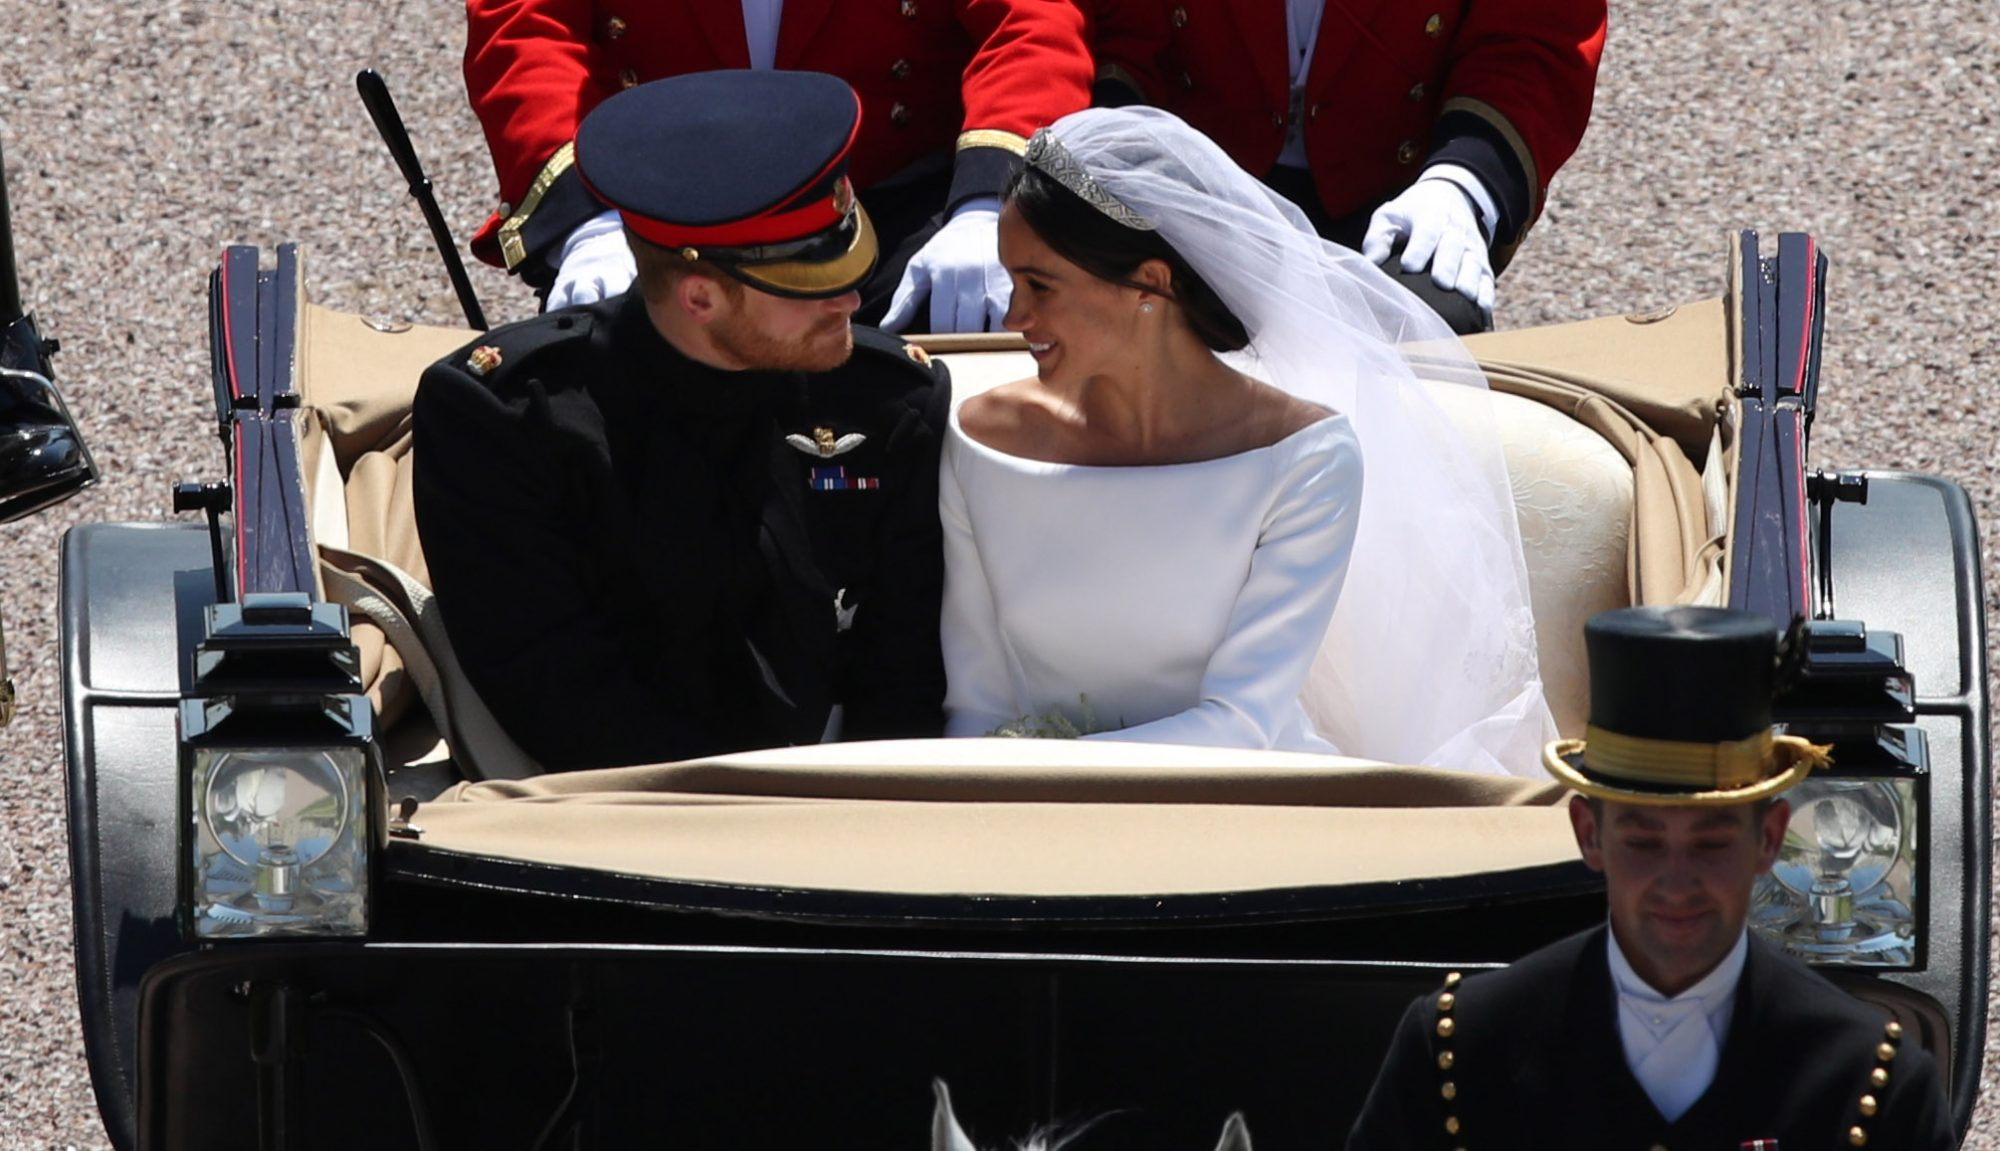 WINDSOR, ENGLAND - MAY 19:  Prince Harry, Duke of Sussex and The Duchess of Sussex leave Windsor Castle in the Ascot Landau carriage during a procession after getting married at St Georges Chapel on May 19, 2018 in Windsor, England.  (Photo by Yui Mok - WPA/Getty Images)